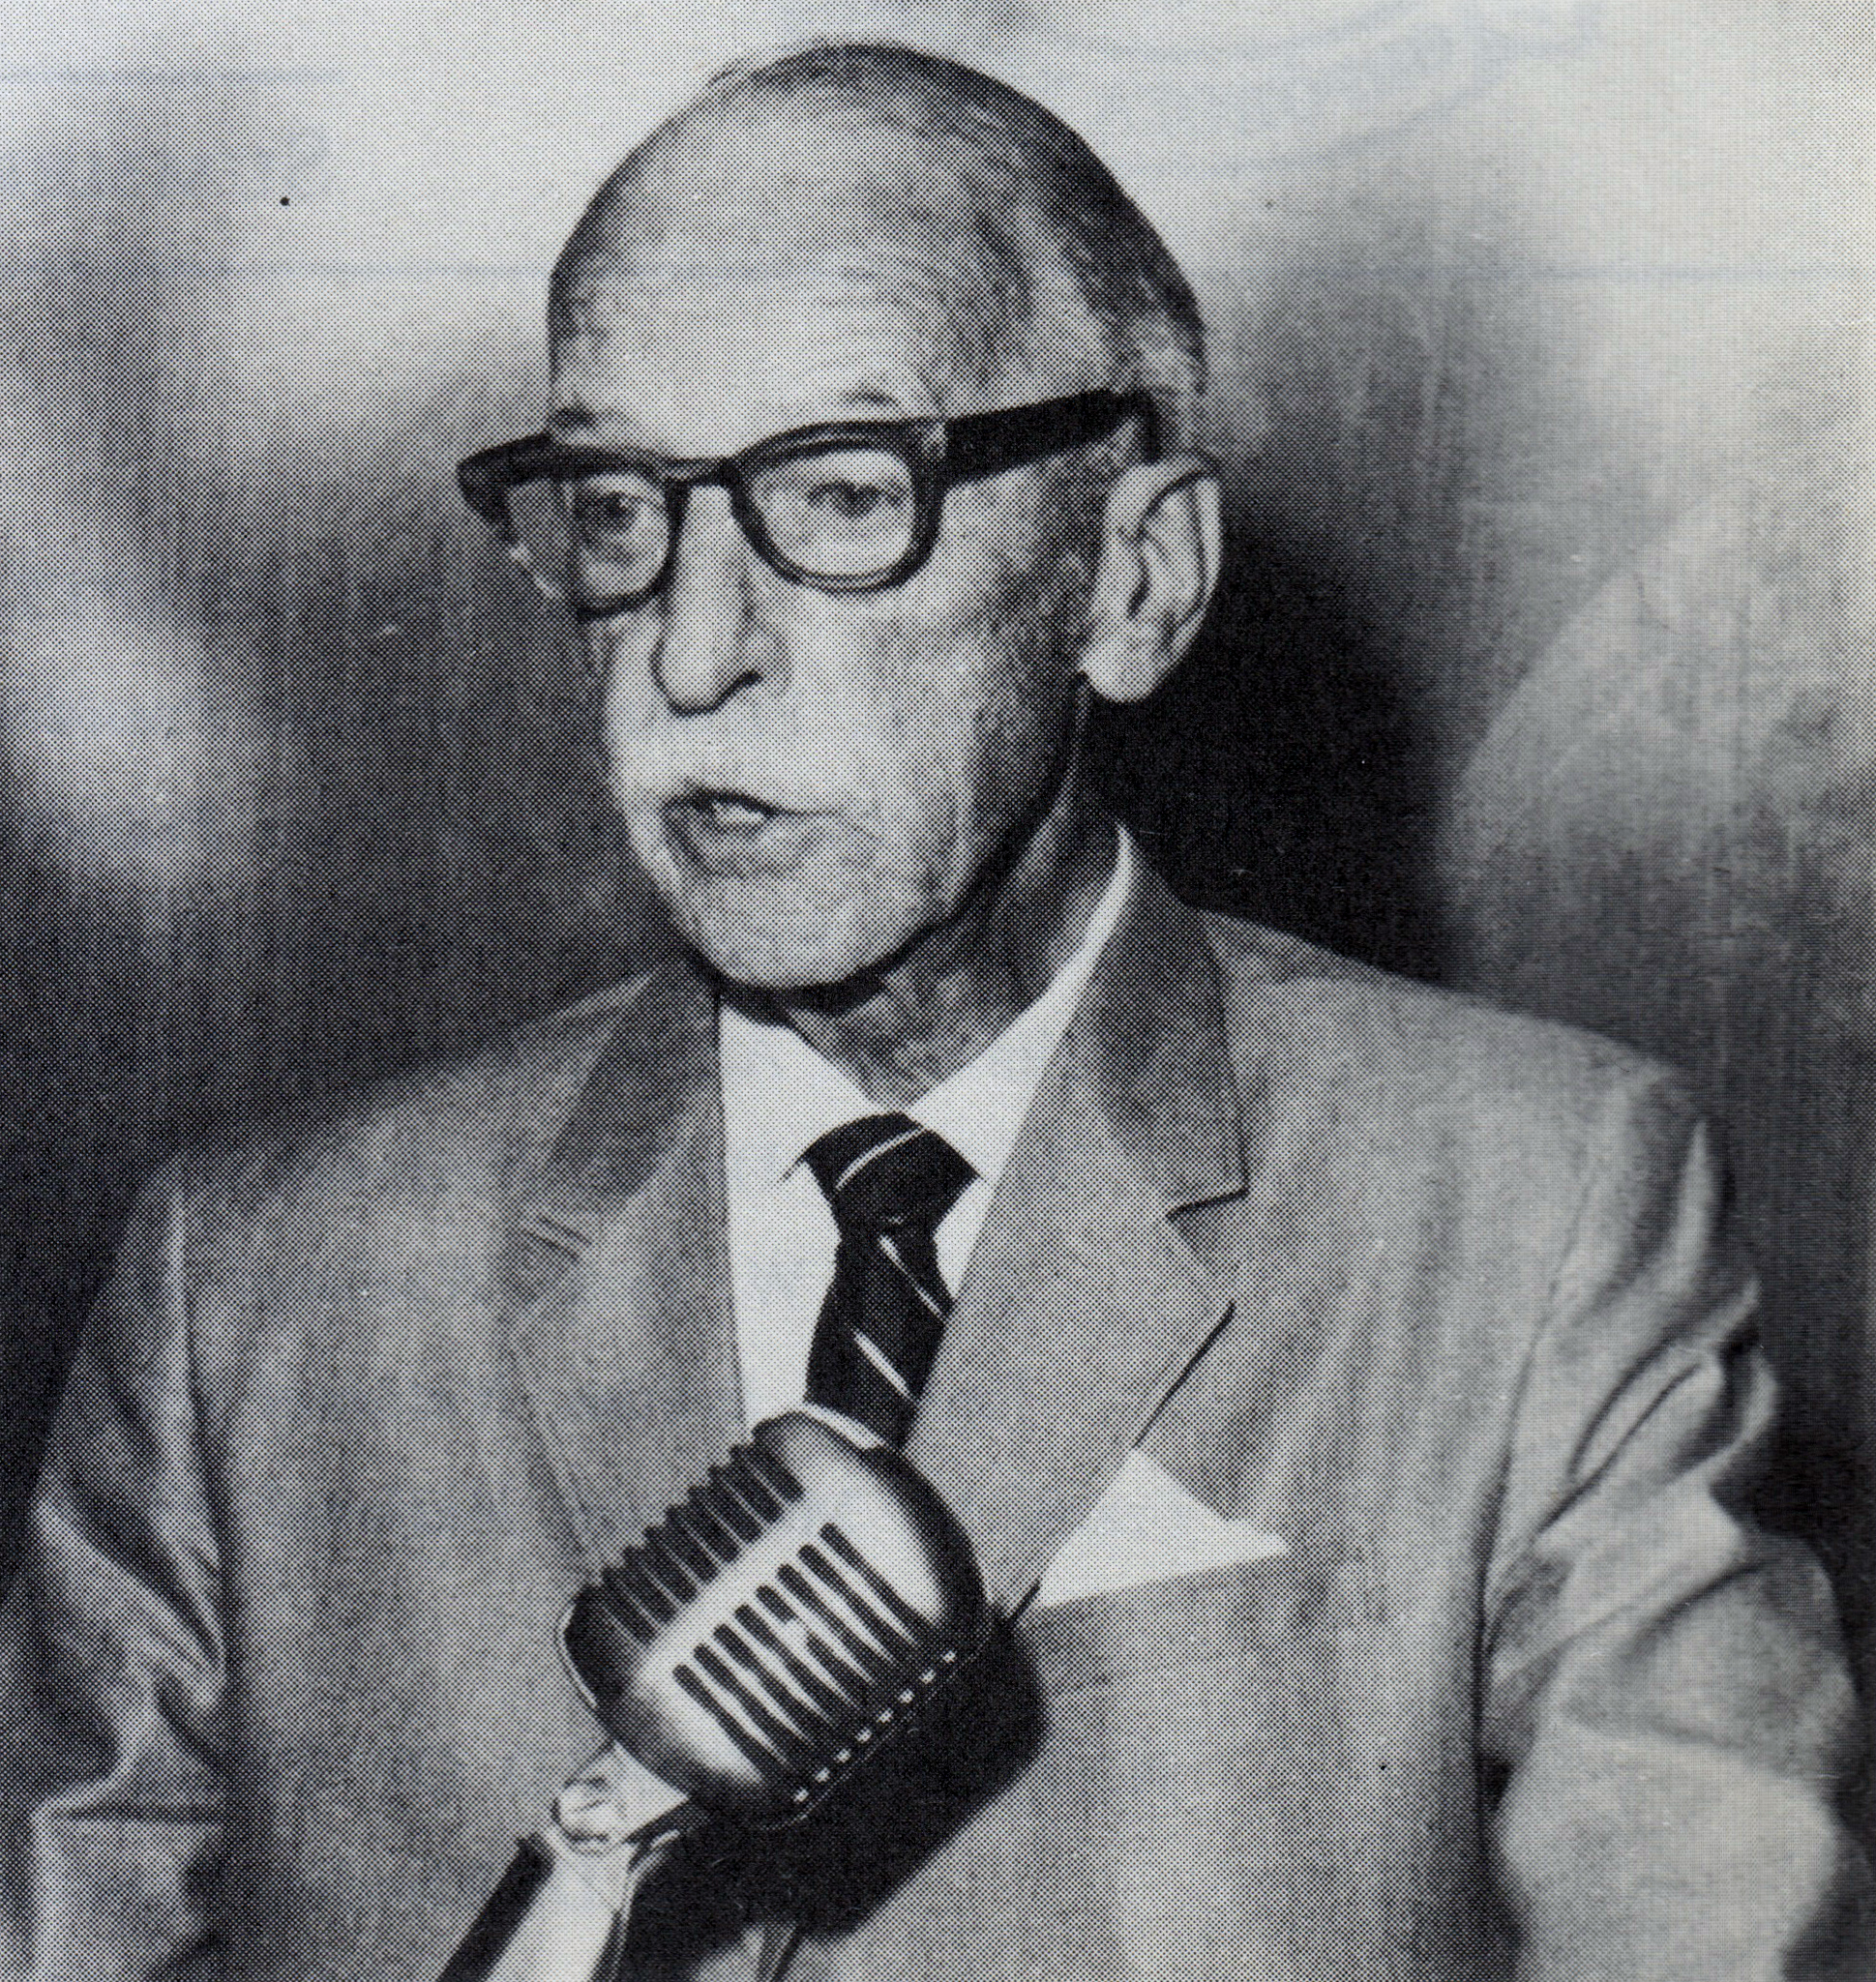 George W. Chapman, Executive Director Emeritus, circa 1968